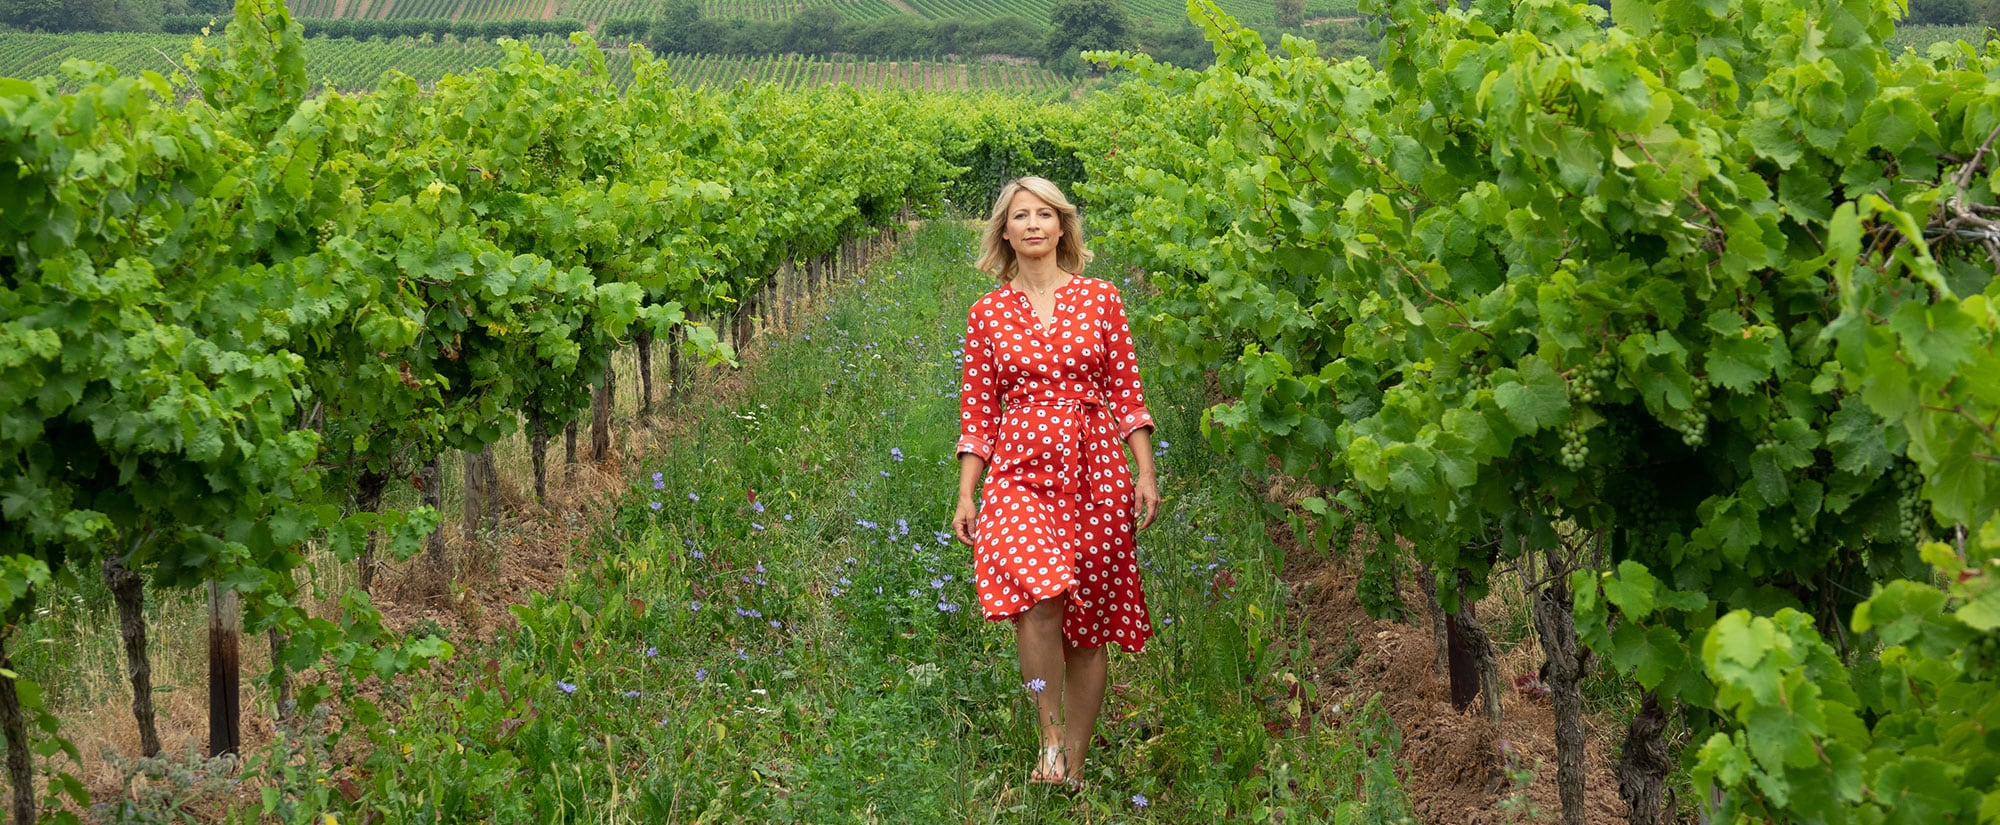 Samantha Brown Places to Love season 2